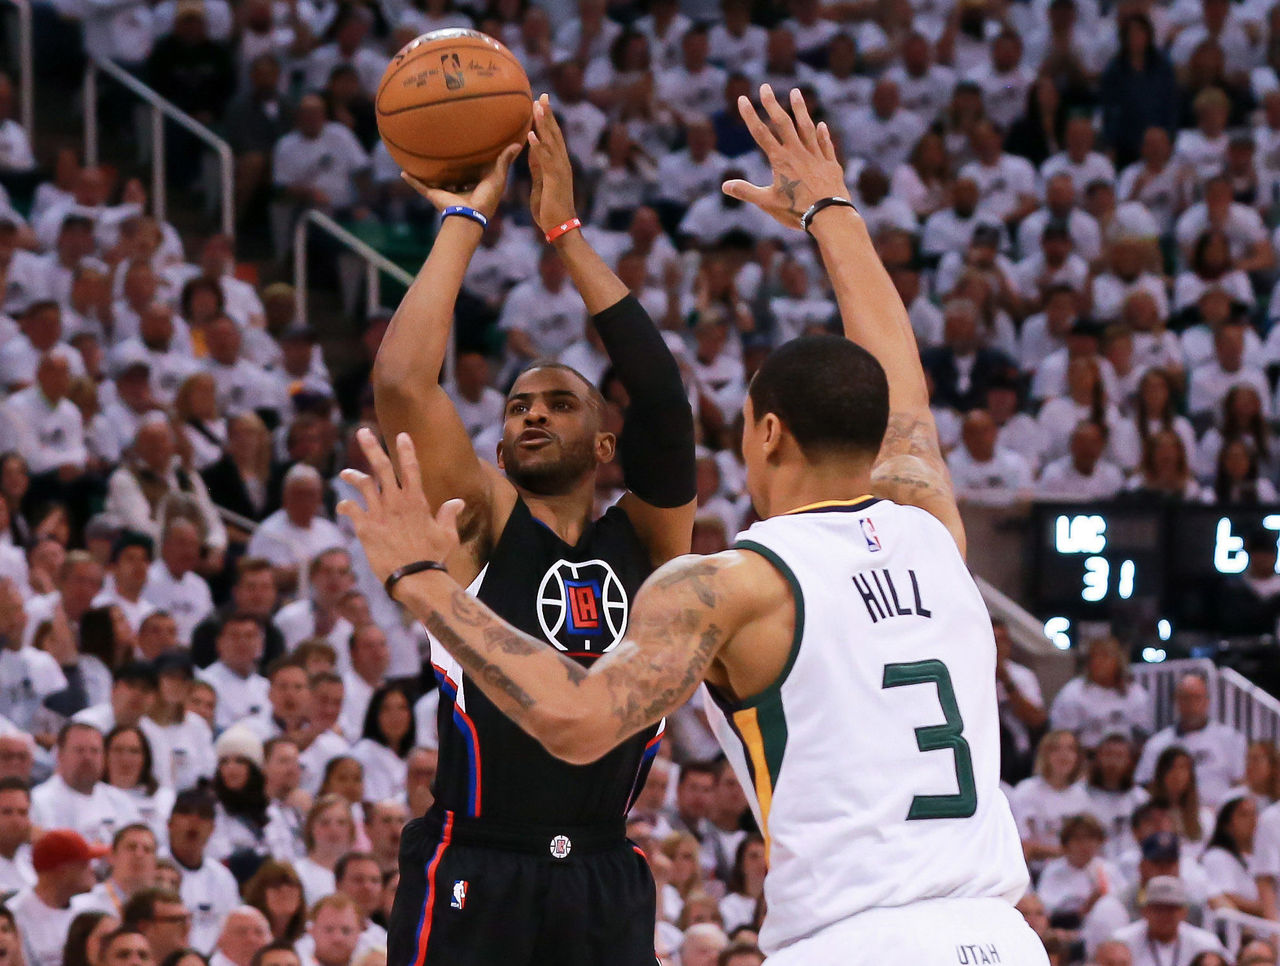 Cropped_2017-04-29t034837z_549300710_nocid_rtrmadp_3_nba-playoffs-los-angeles-clippers-at-utah-jazz